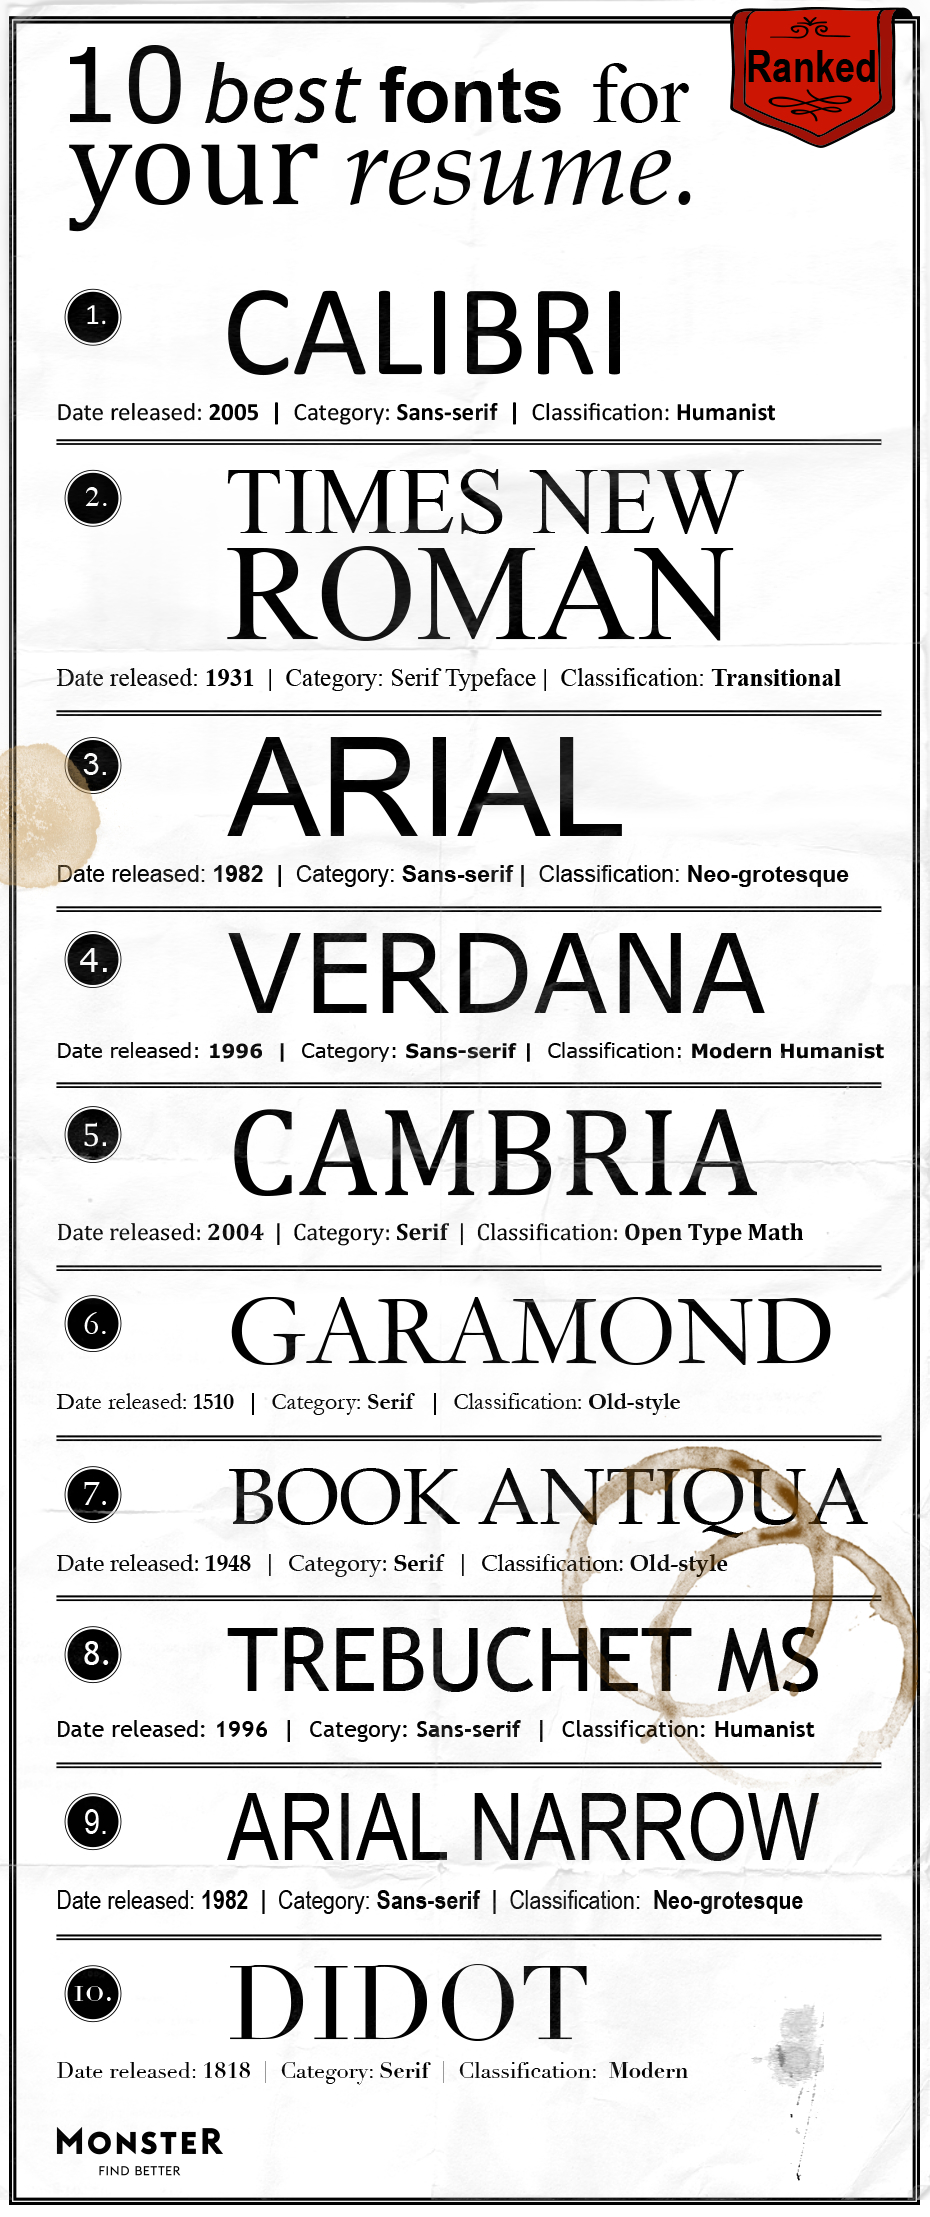 Best Fonts for Your Resume  Monster.com